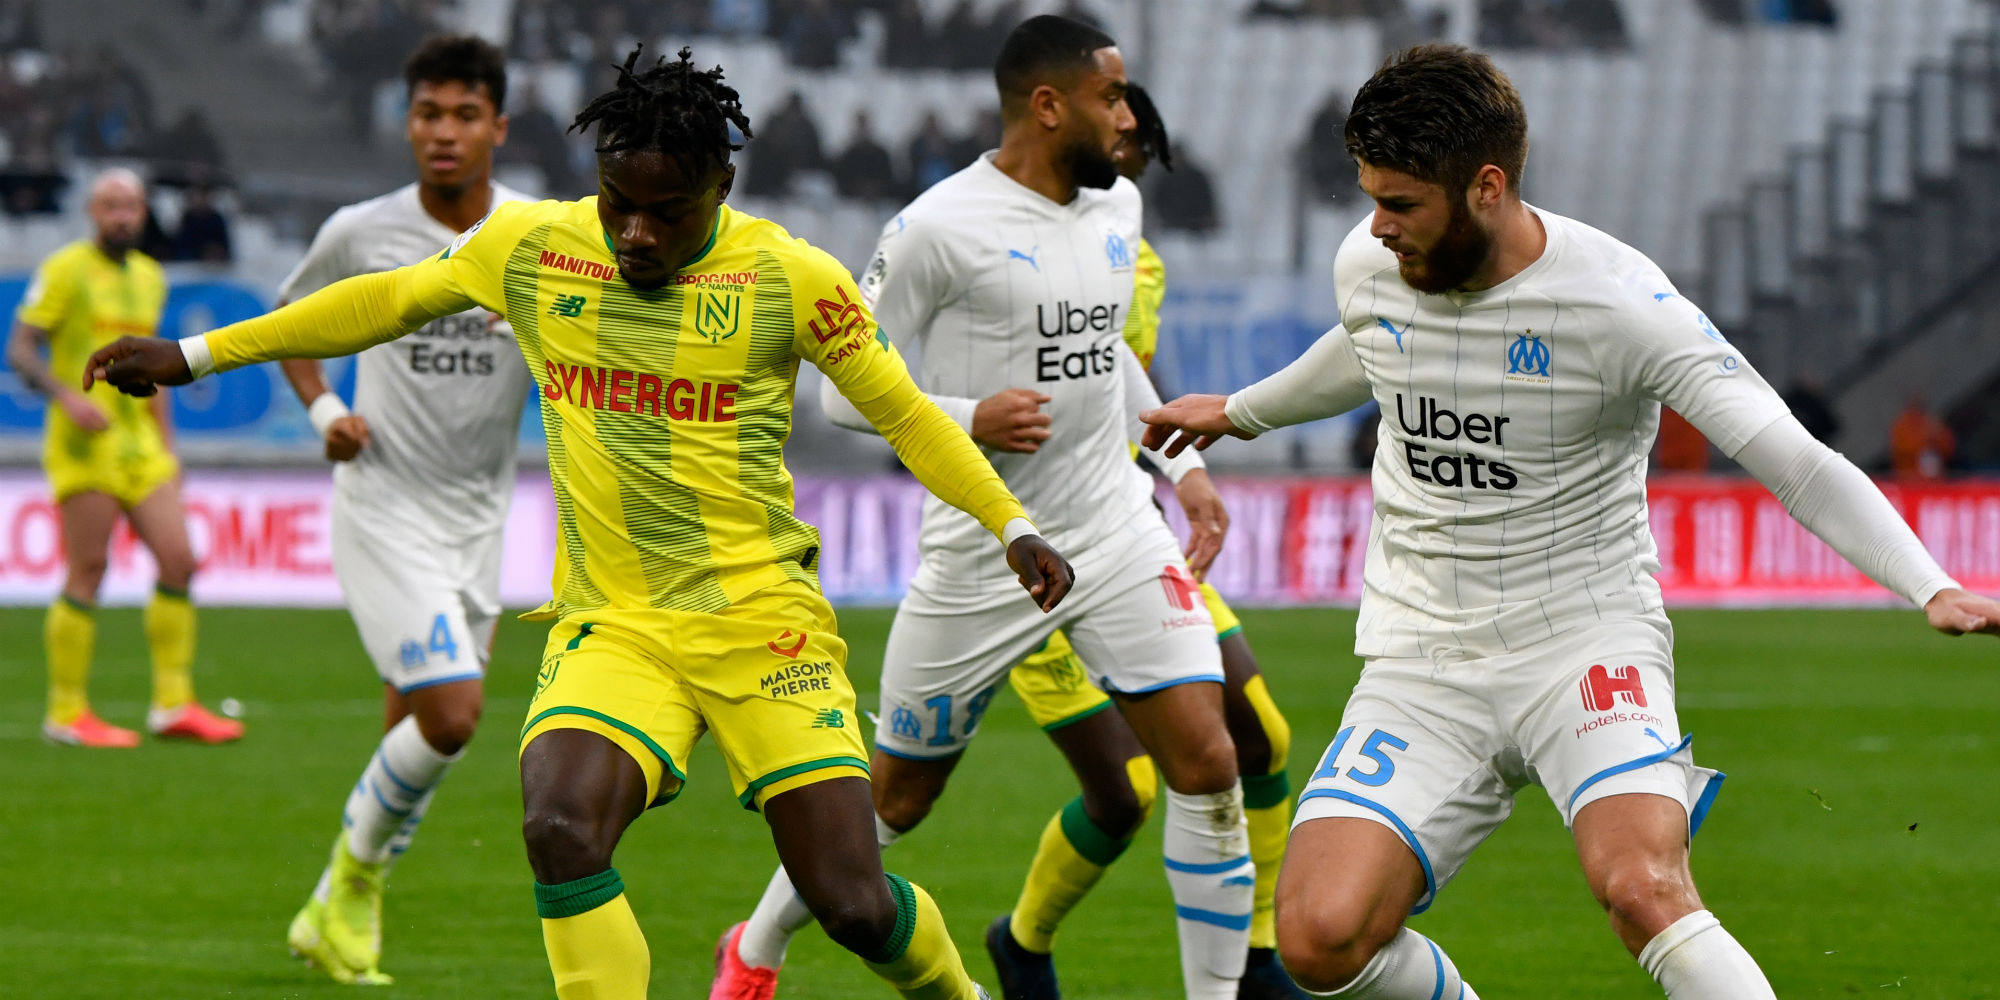 Ligue 1 Om Fall Against Nantes Monaco Hung On Dijon And Lille Triumph Over Toulouse Teller Report